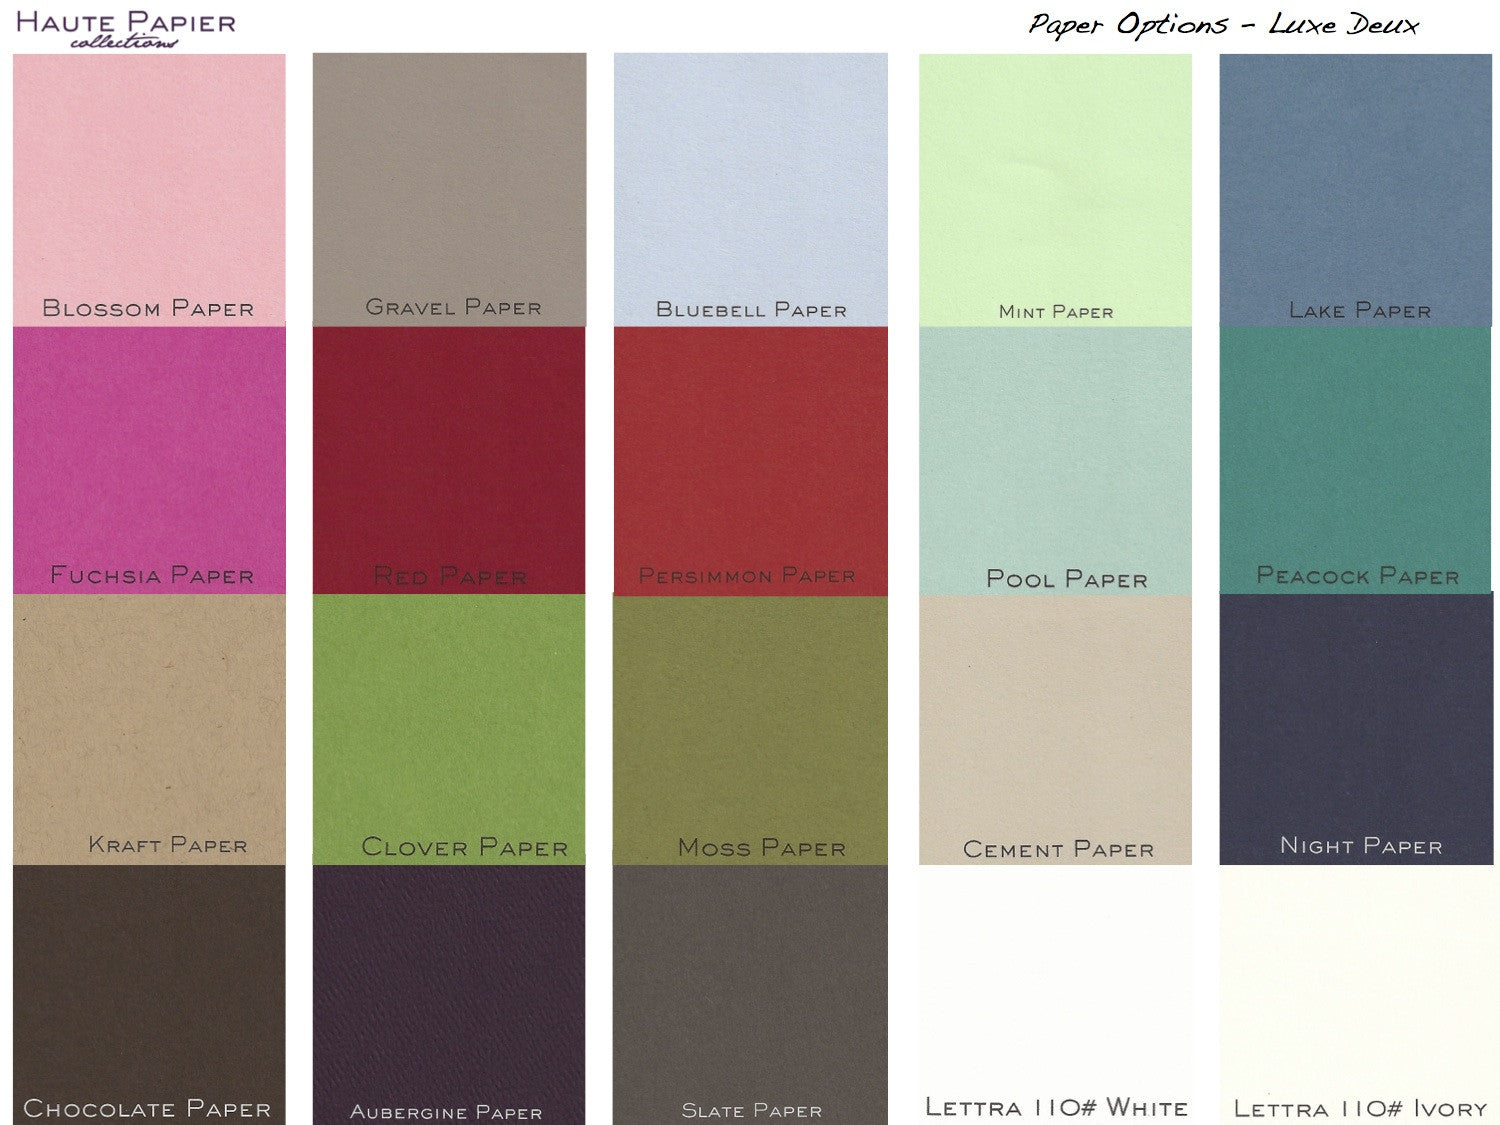 Haute Papier - Paper color options